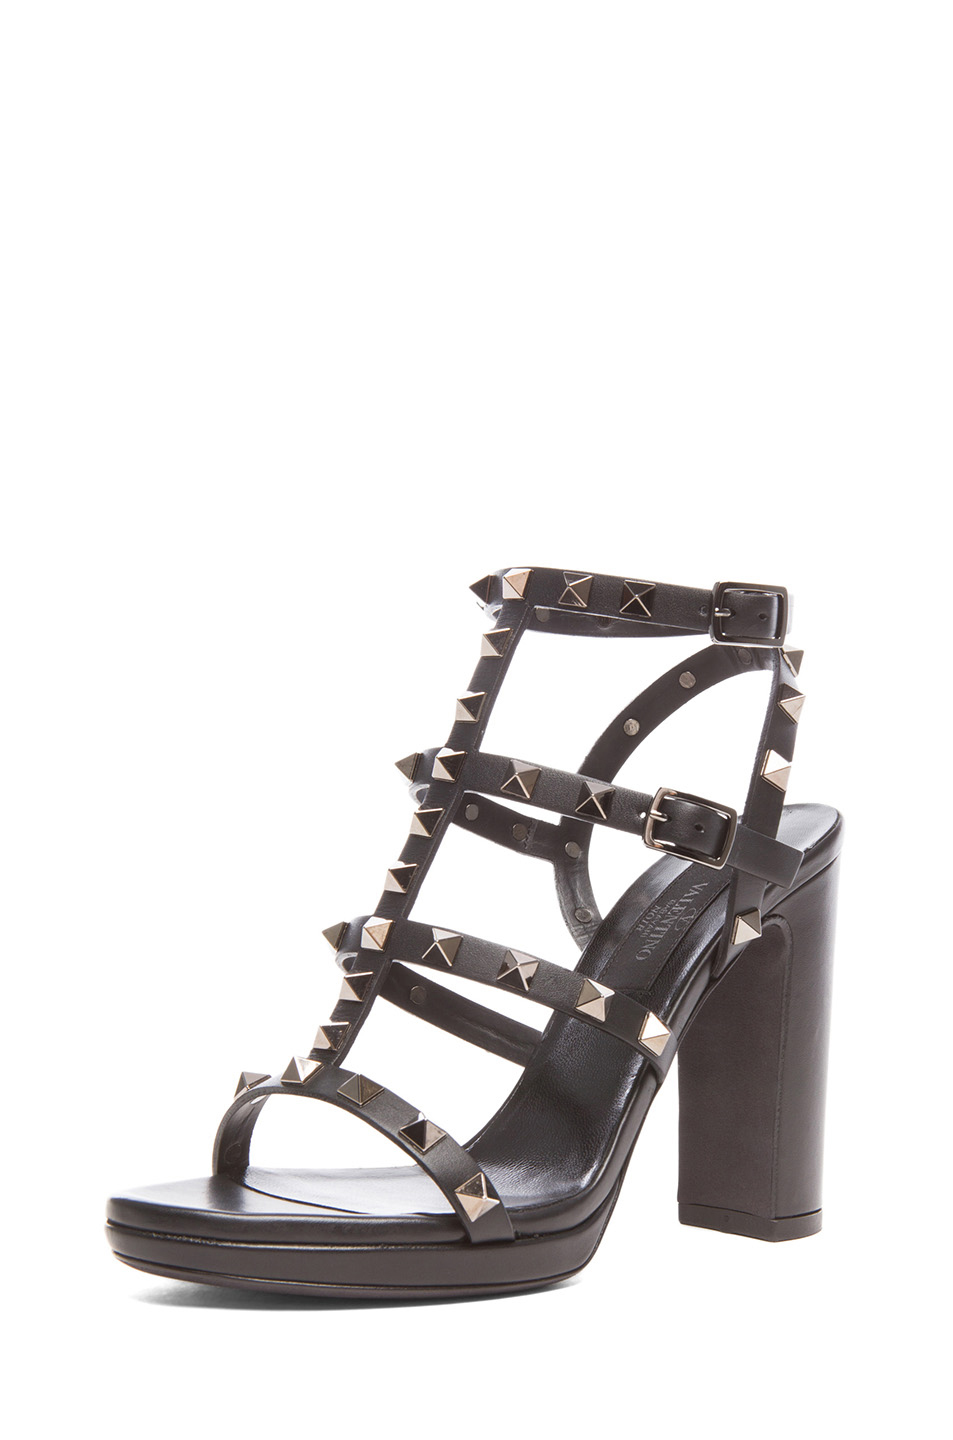 Valentino|Noir Rockstud Leather Gladiator Heels T.95 in Ruthenium Black